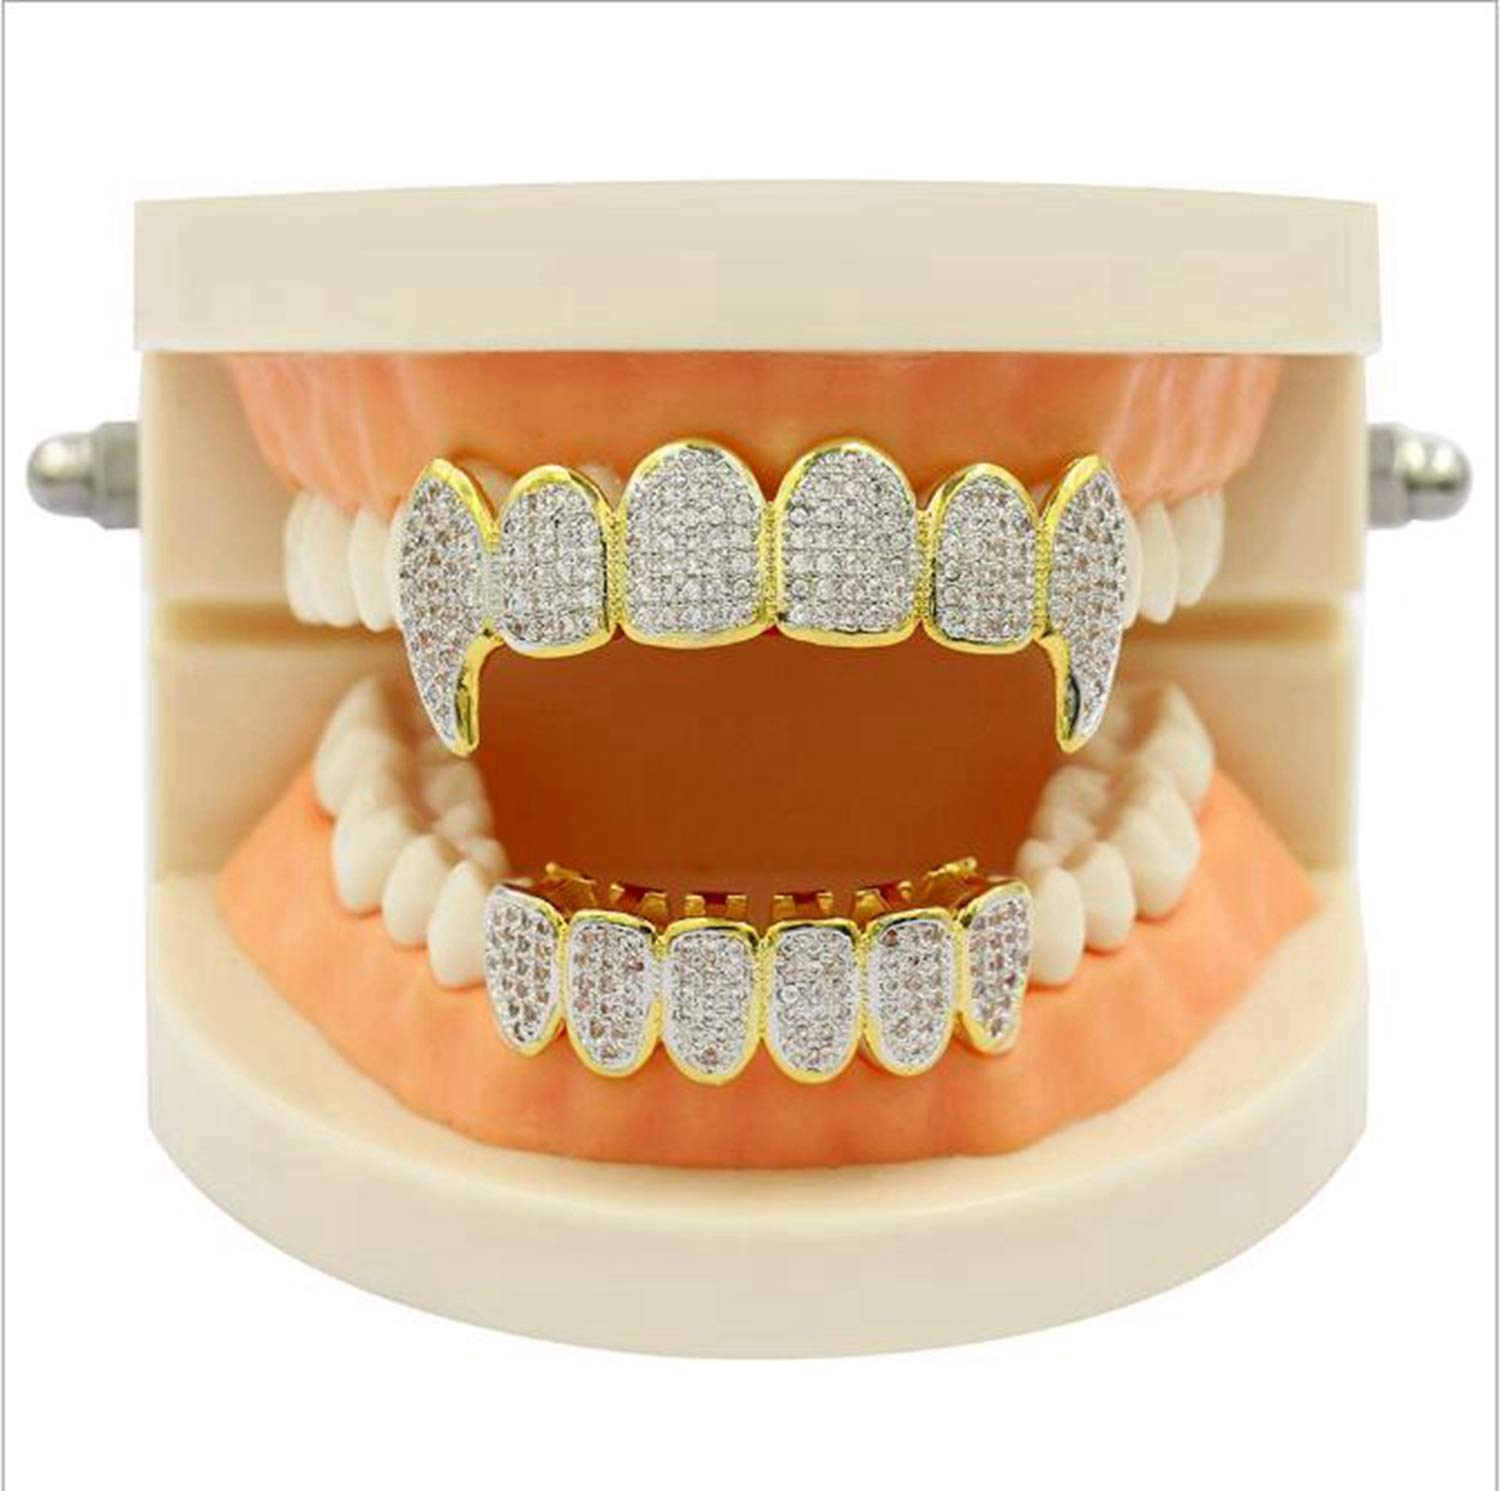 Maple_Leaf Grillz Diamond Top and Bottom Set BBQ 24K Gold-Plated Grill for The Top of The Mouth Top Hip Hop Teeth Grill, Teeth Baking Cap Men and Women Gifts by Maple_Leaf